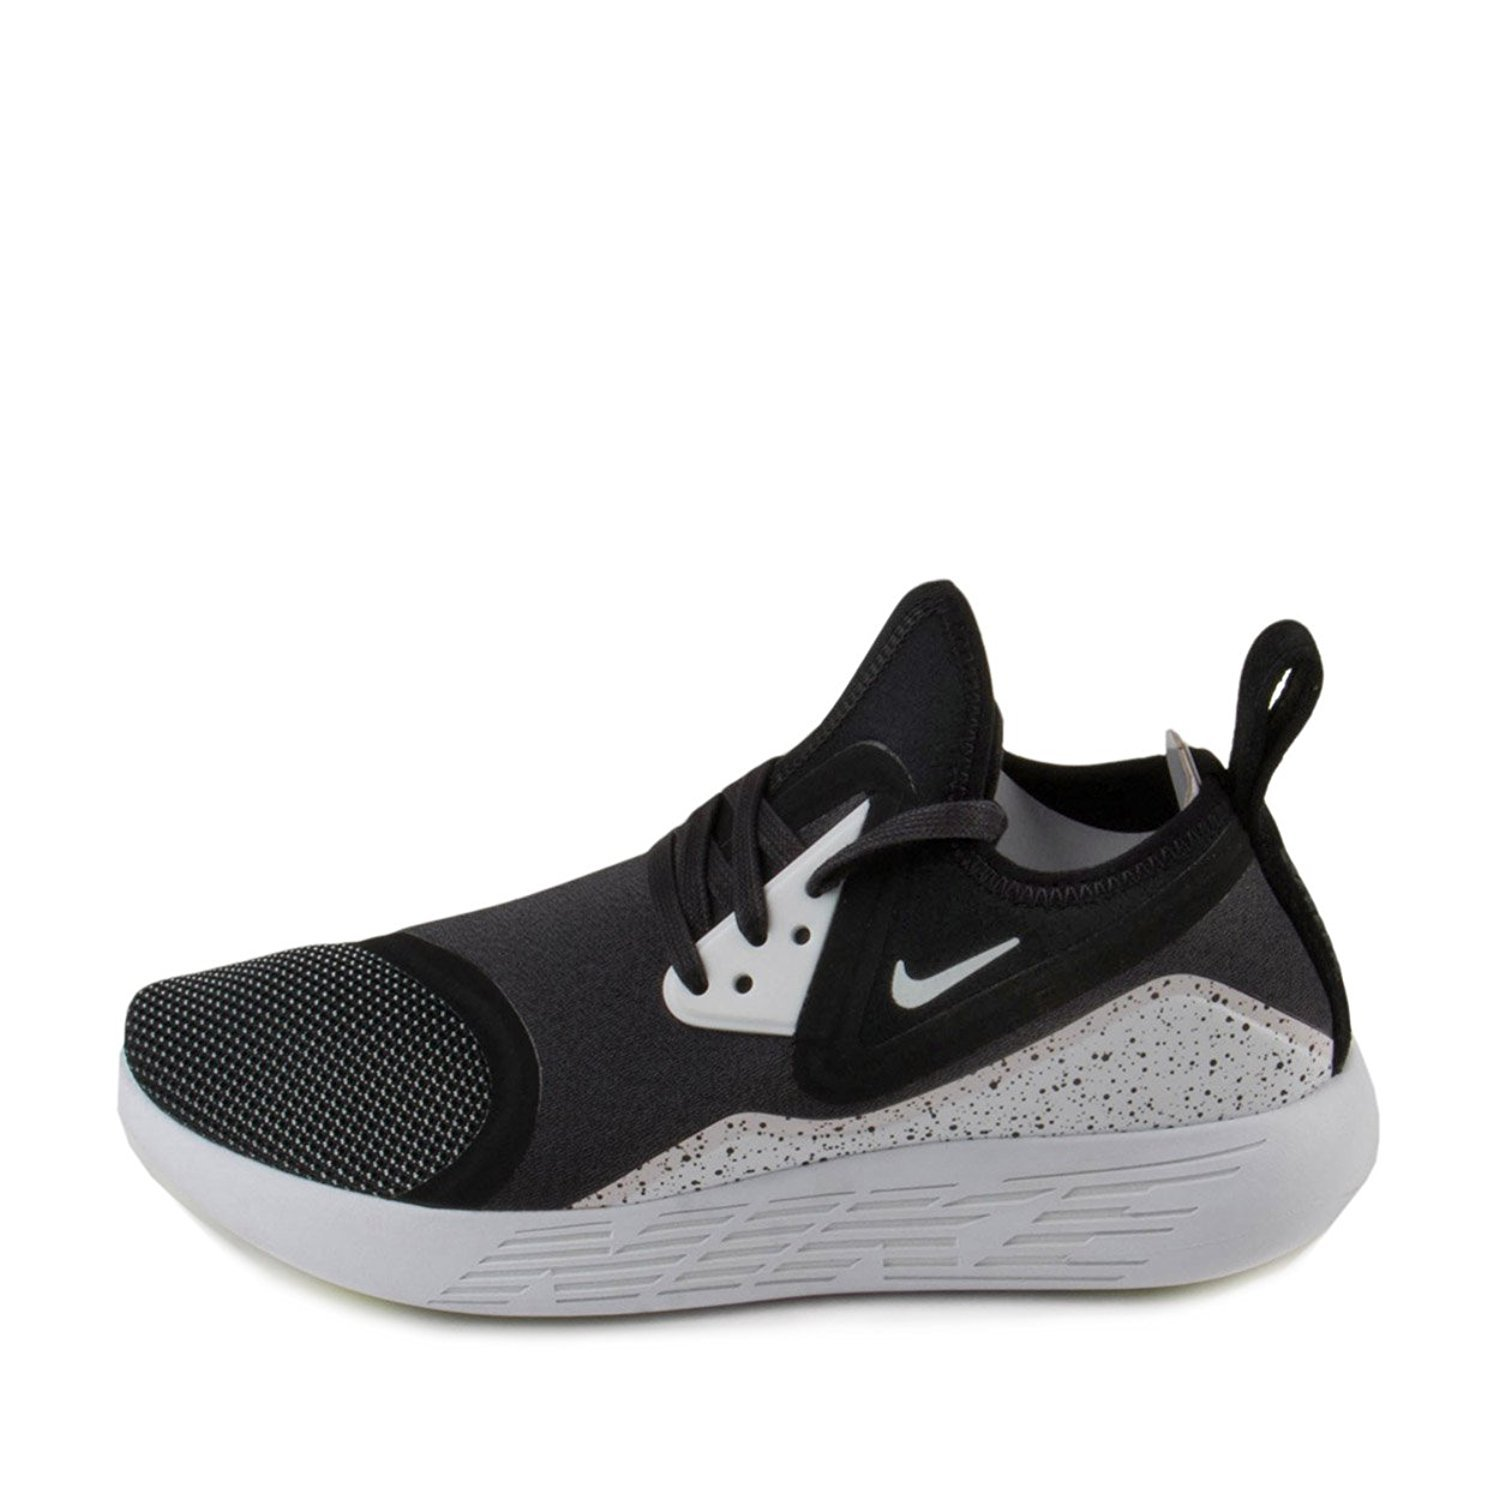 zapatillas para lunarcharge correr nike lunarcharge mujer essenziale